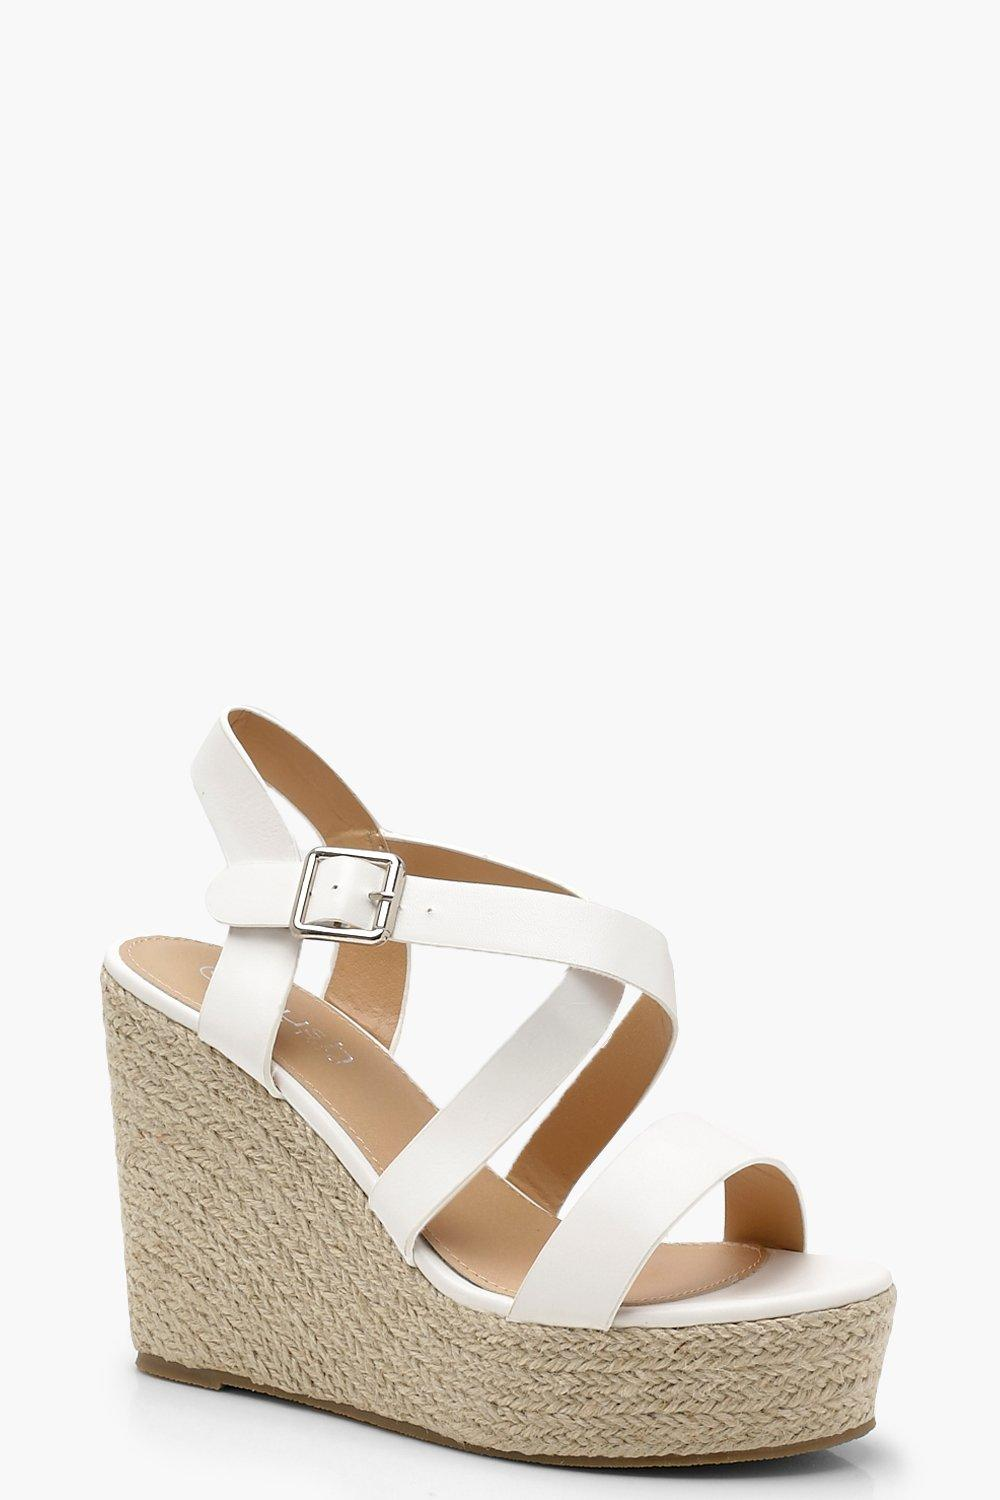 41d55752dea Strappy Espadrille Wedges | Boohoo